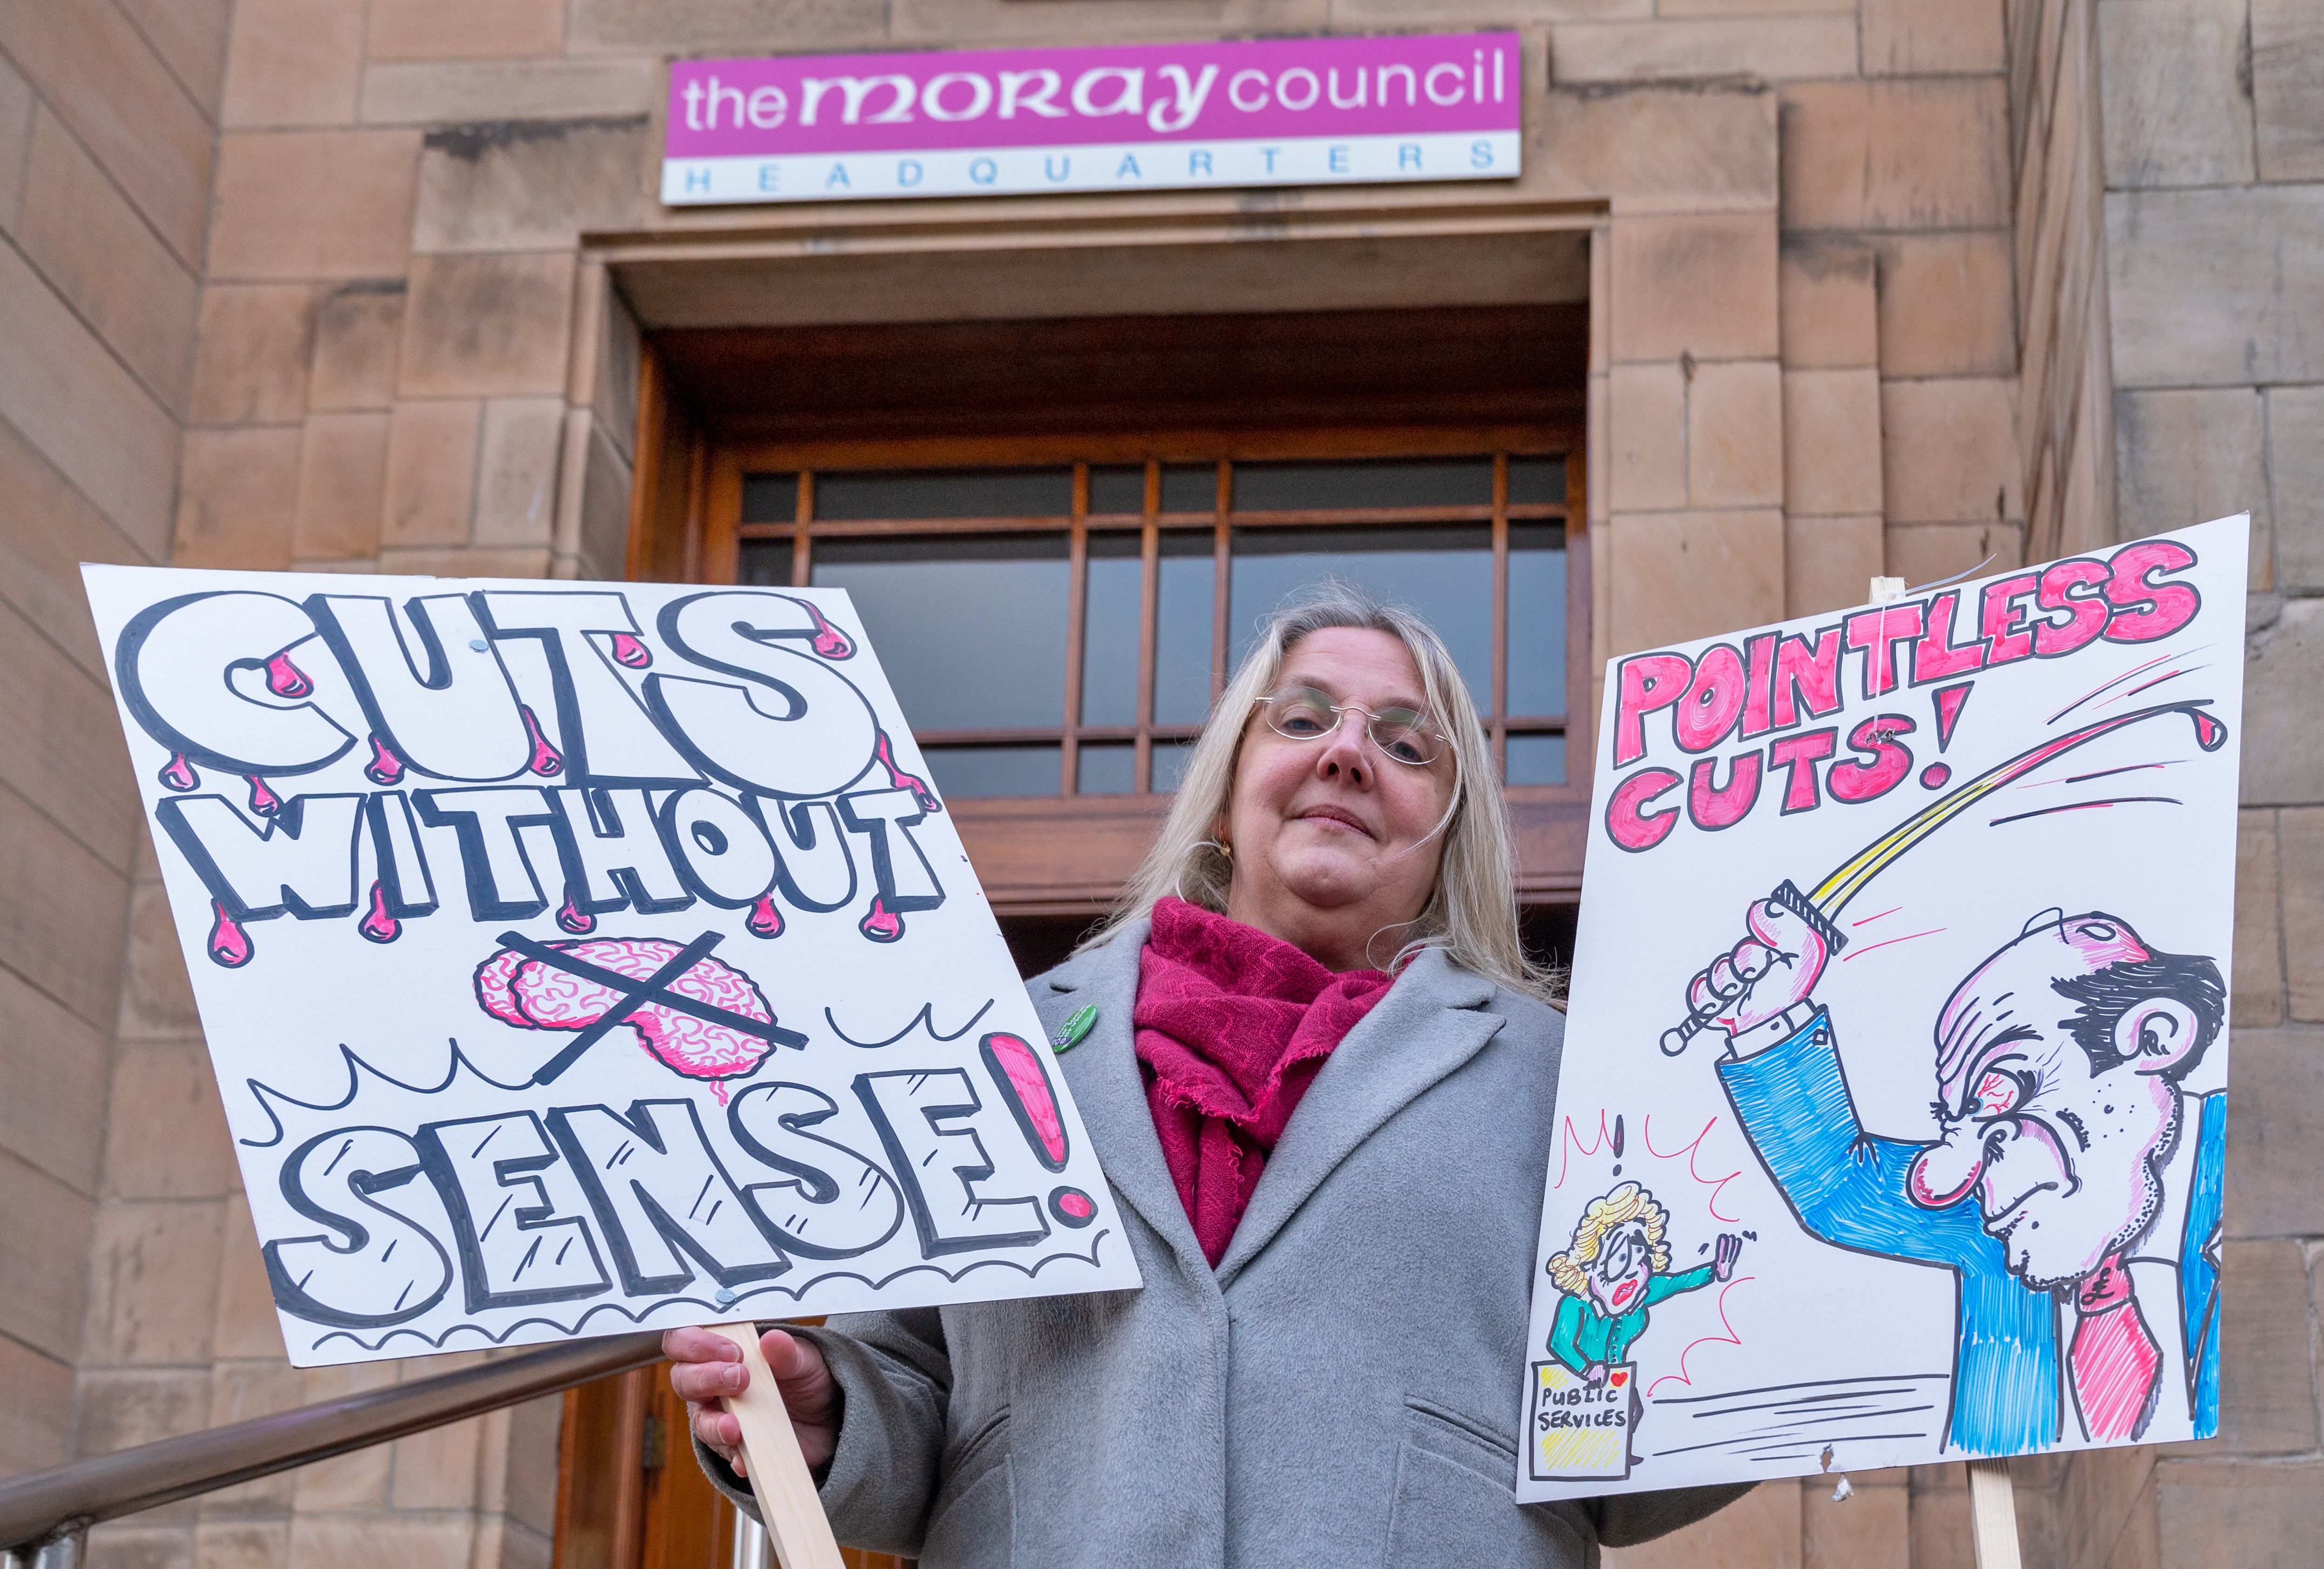 Suzanne Wright of Unison Scotland at protest over budget cuts outside Moray Council HQ.